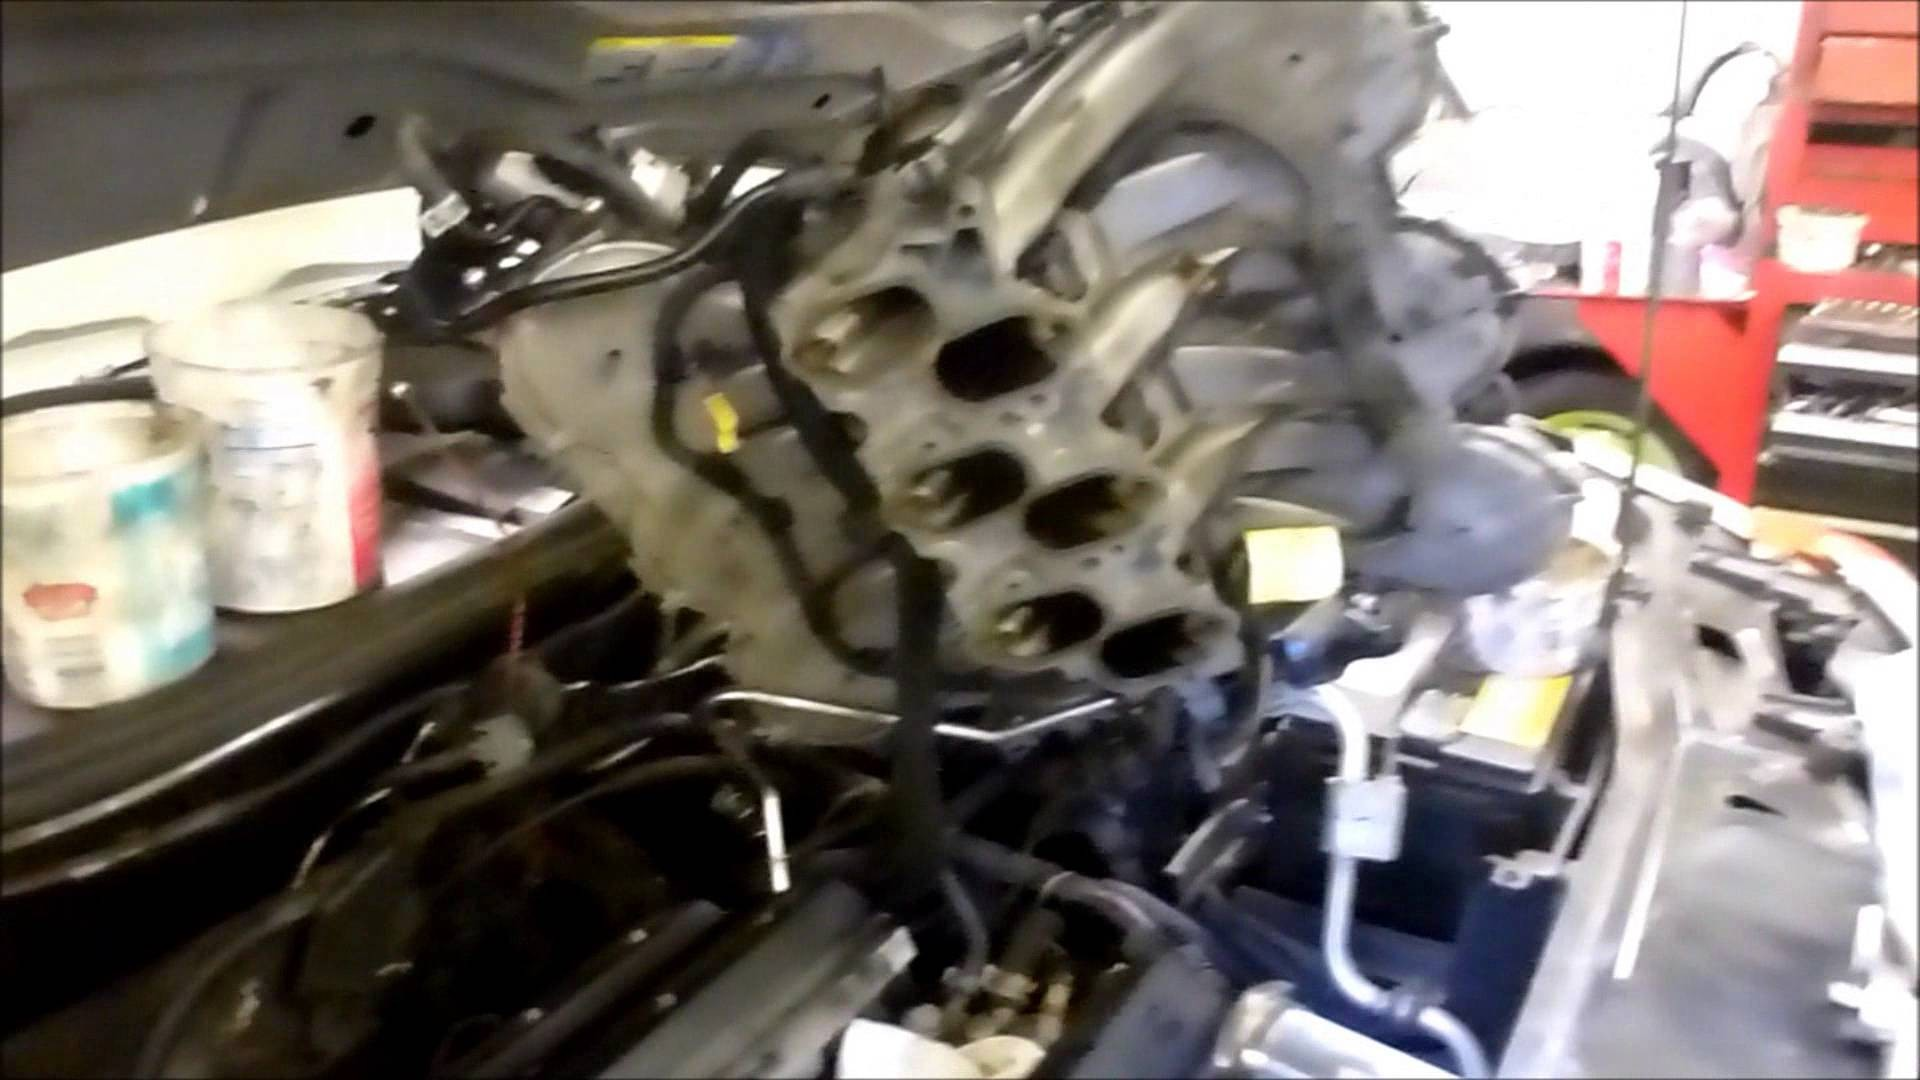 2003 Saturn Vue V6 Engine Diagram Wiring 2000 Sl2 Ls2 Thermostat And Spark Plugs Of